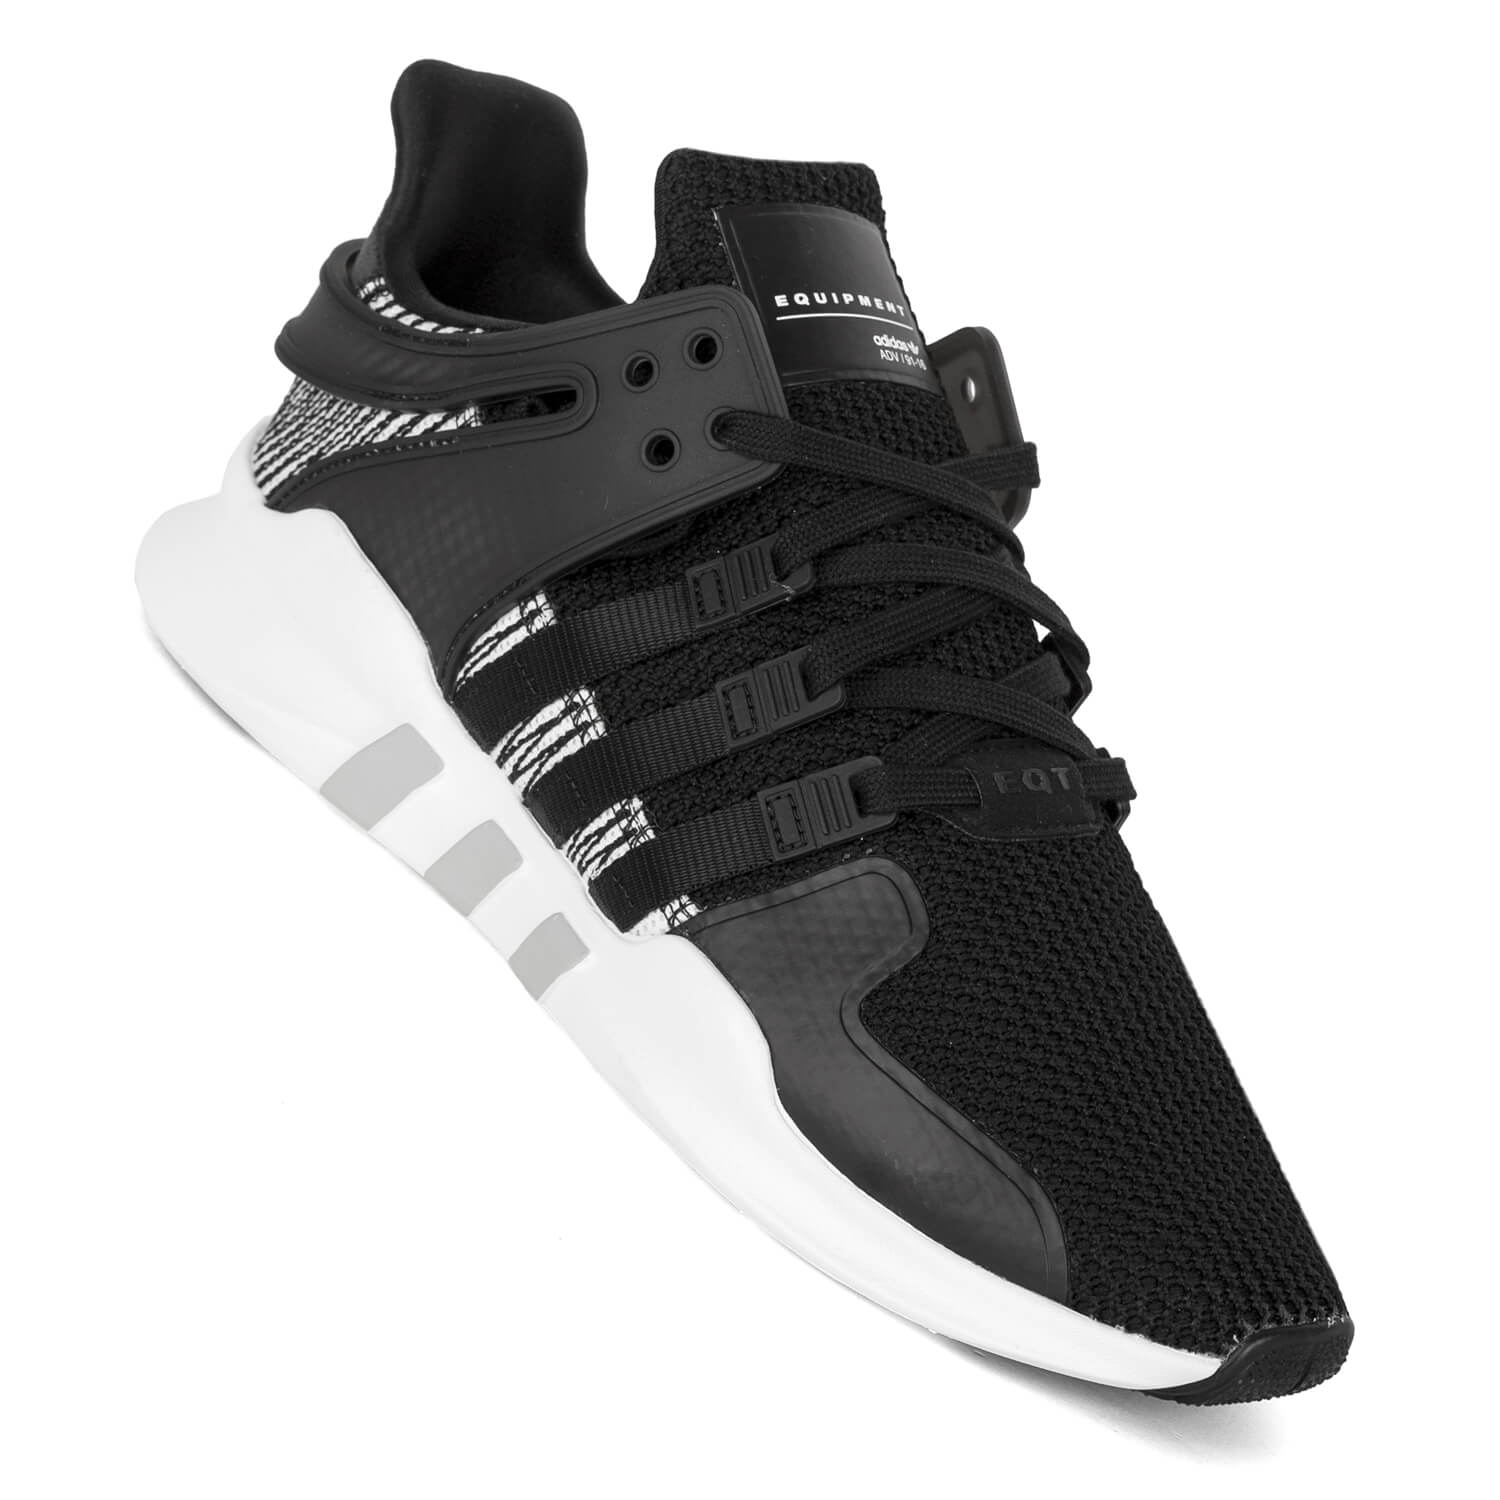 adidas eqt support adv core black herren sneaker by9585. Black Bedroom Furniture Sets. Home Design Ideas